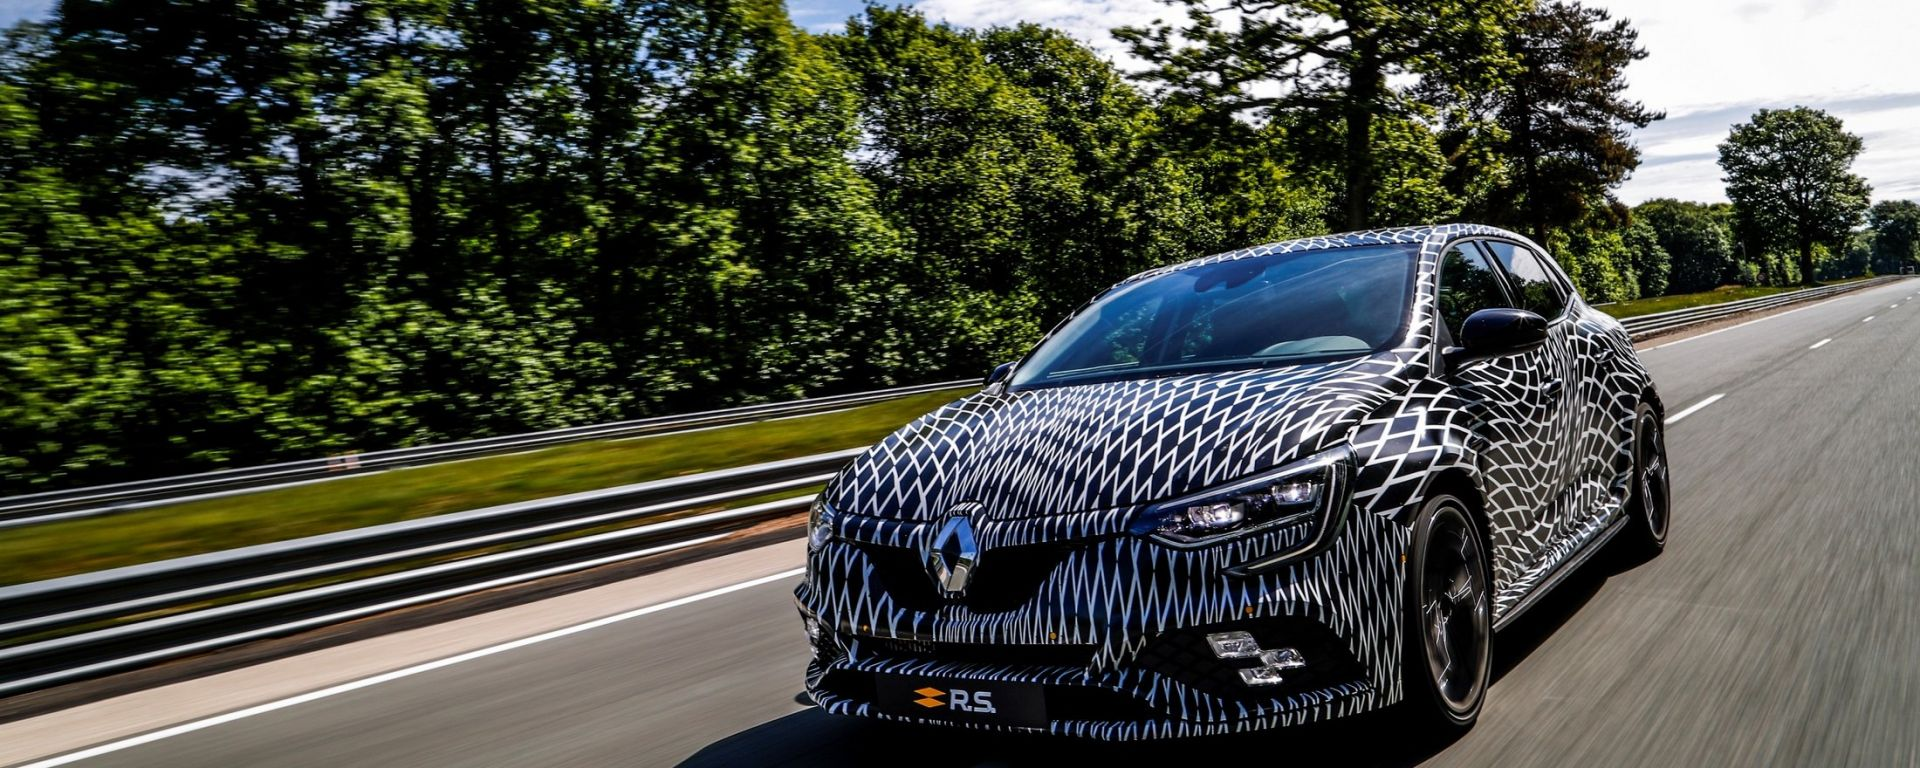 Nuova Renault Megane R.S. in pista a Montecarlo